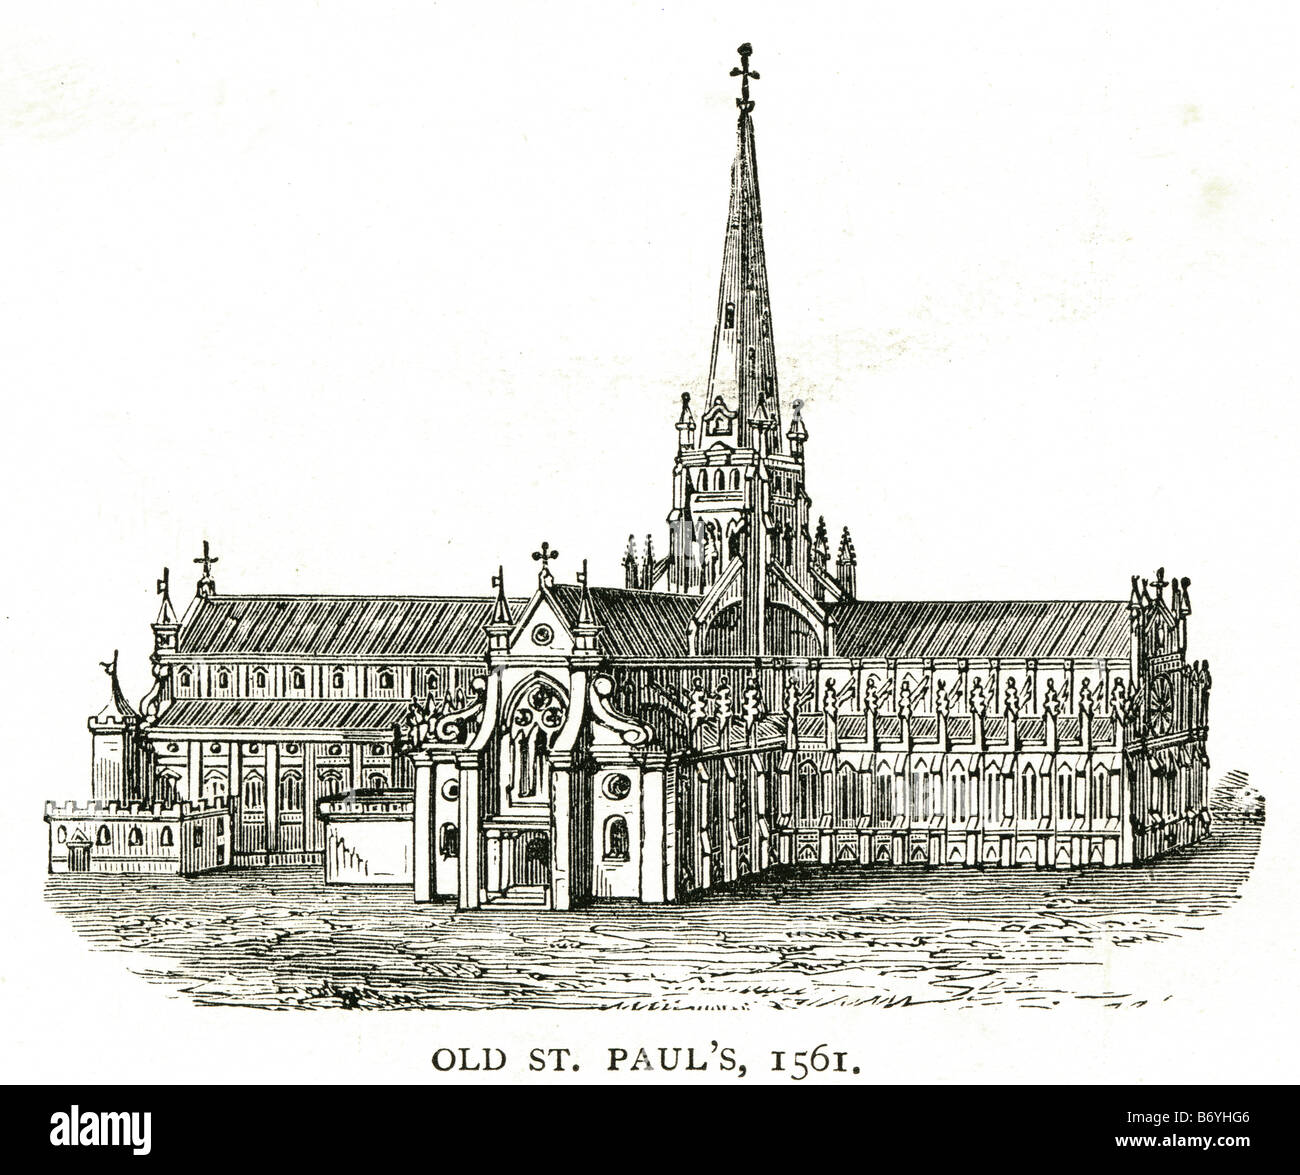 old st. paul's 1561 Gothic cathedral City of London Great Fire Stock Photo